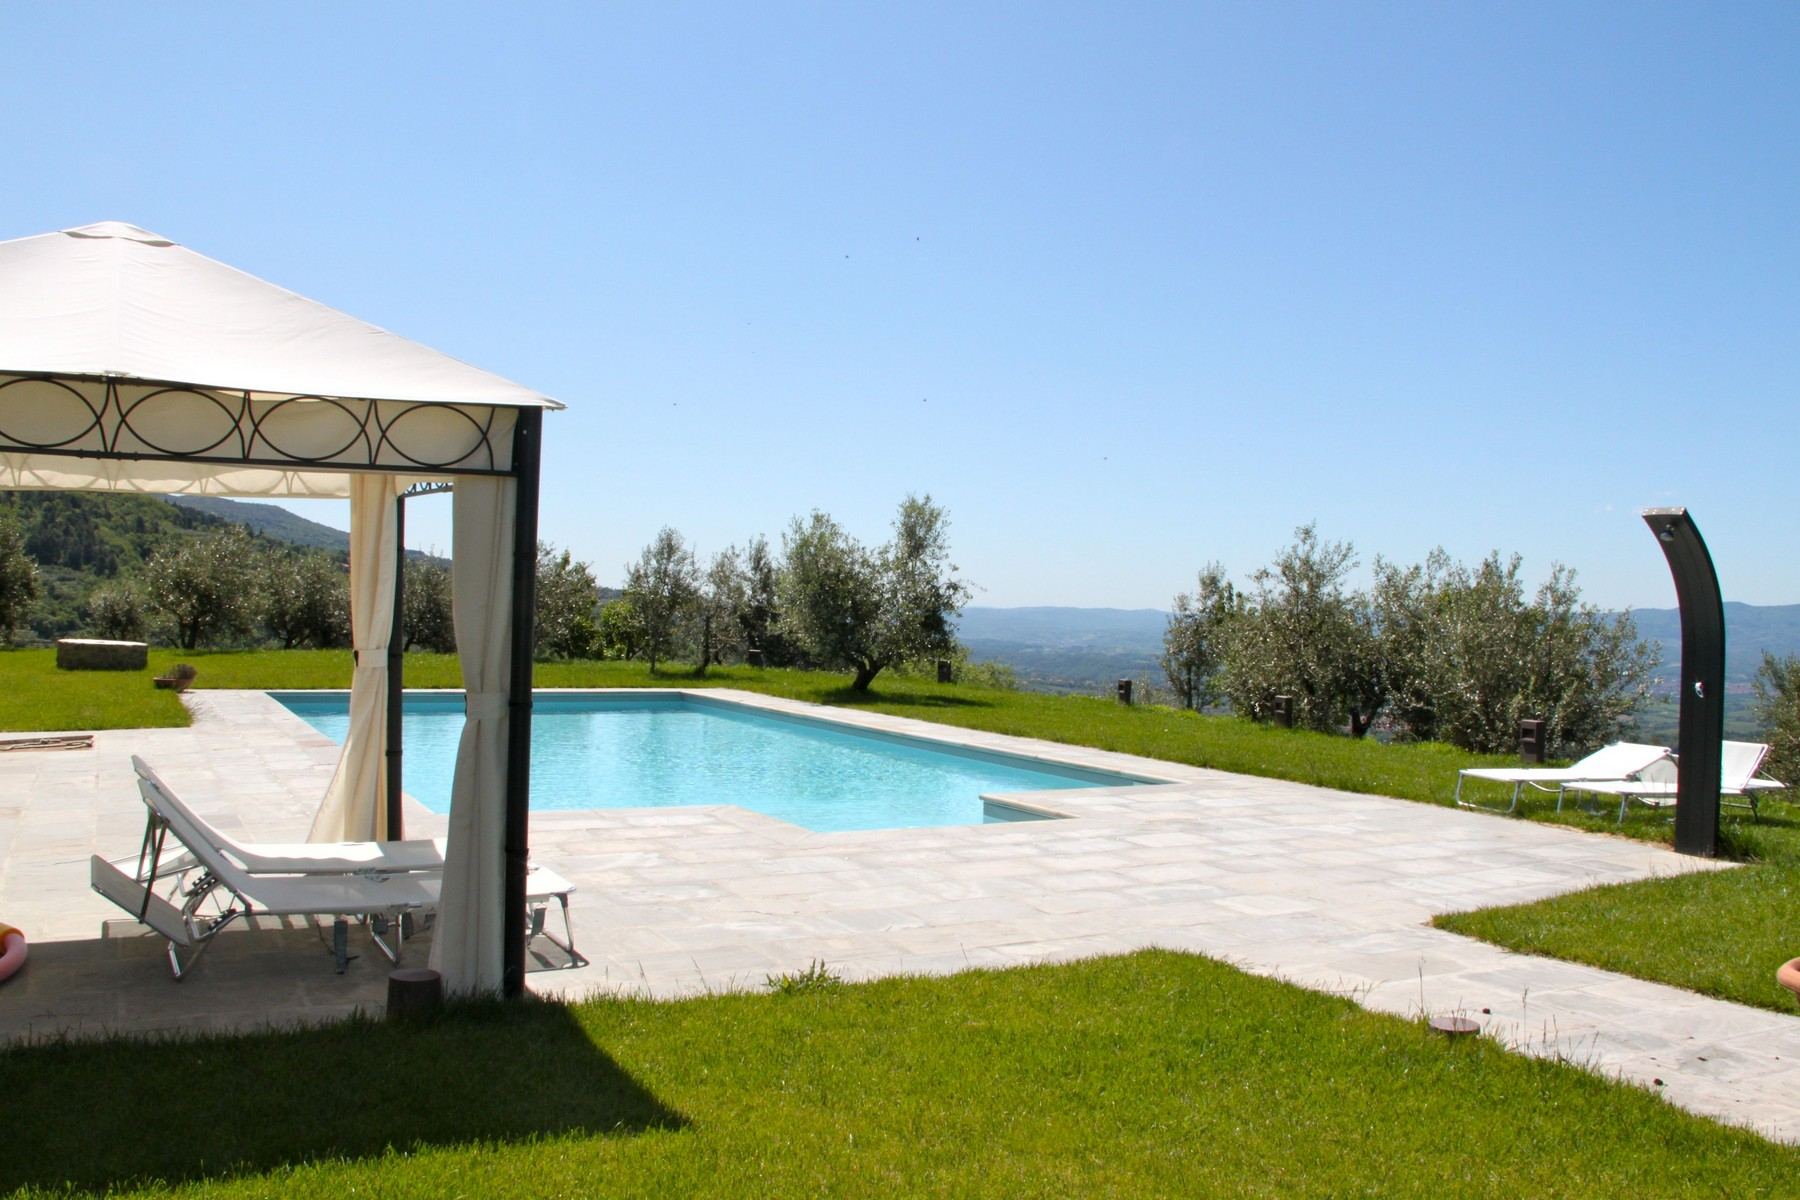 Additional photo for property listing at Design villa in the Tuscan countryside Pian di Sco Arezzo, Arezzo 52026 Italy